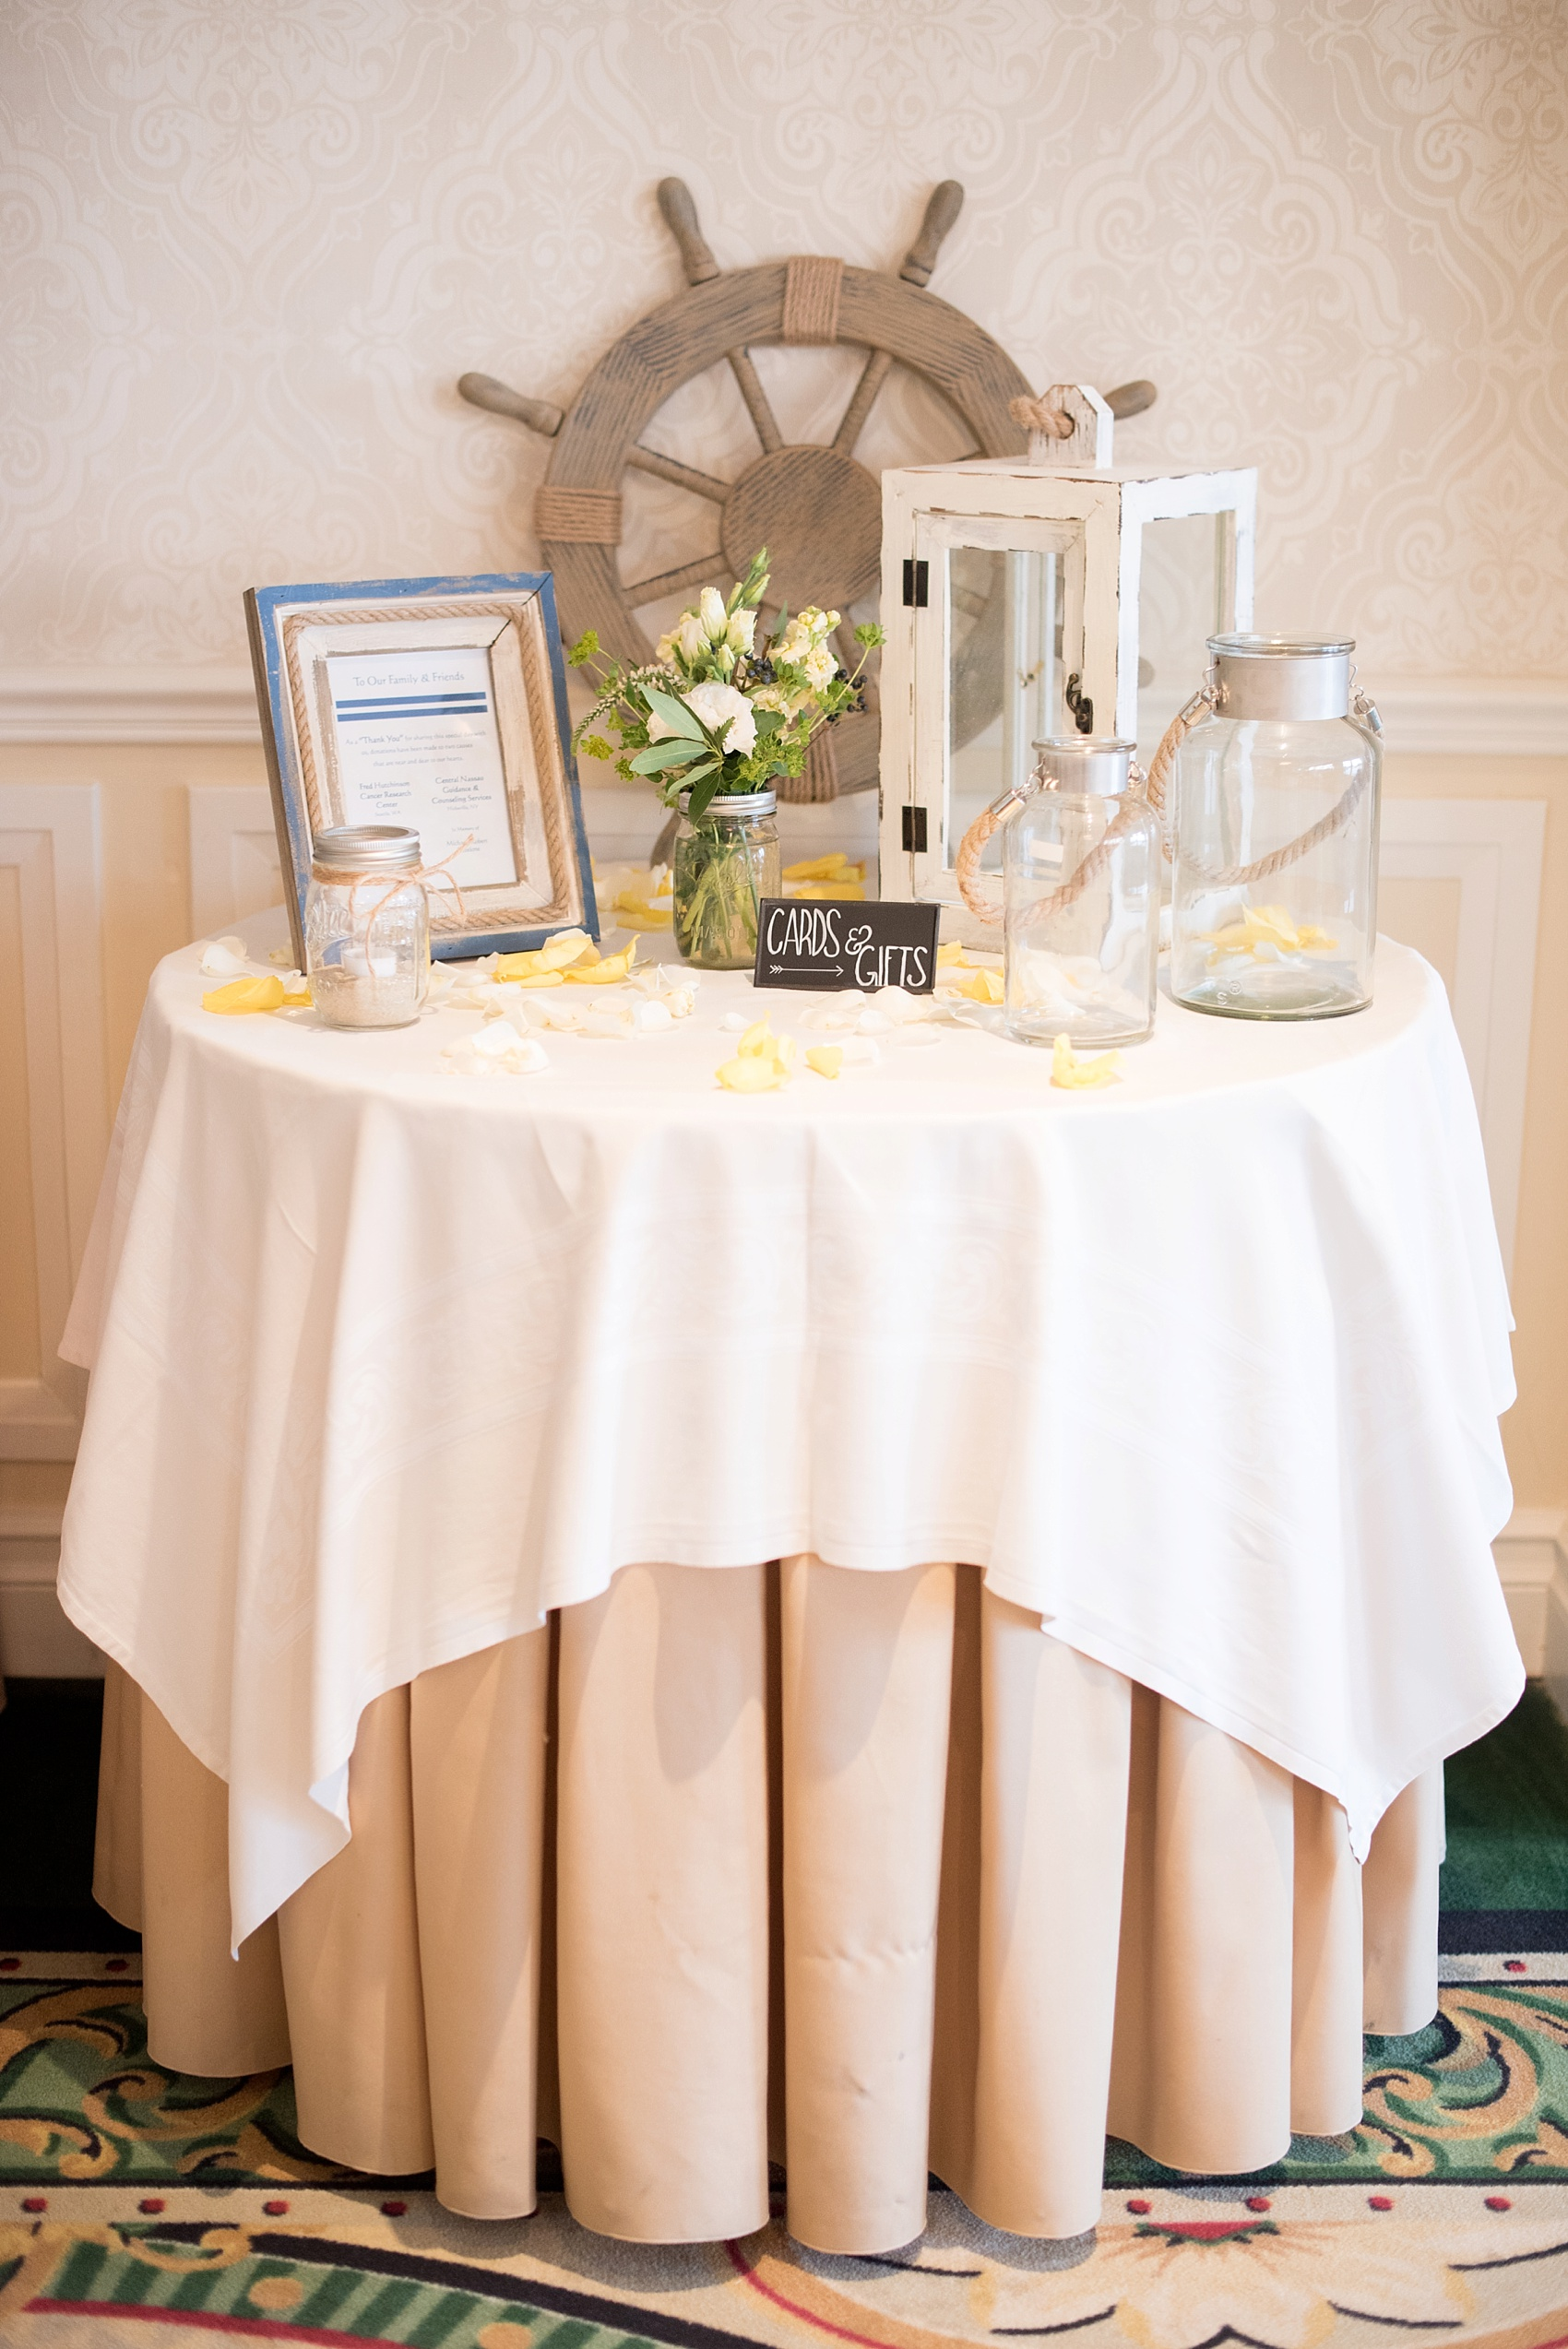 New Jersey waterfront wedding with a nautical theme at the Molly Pitcher Inn. Photo by Mikkel Paige Photography.